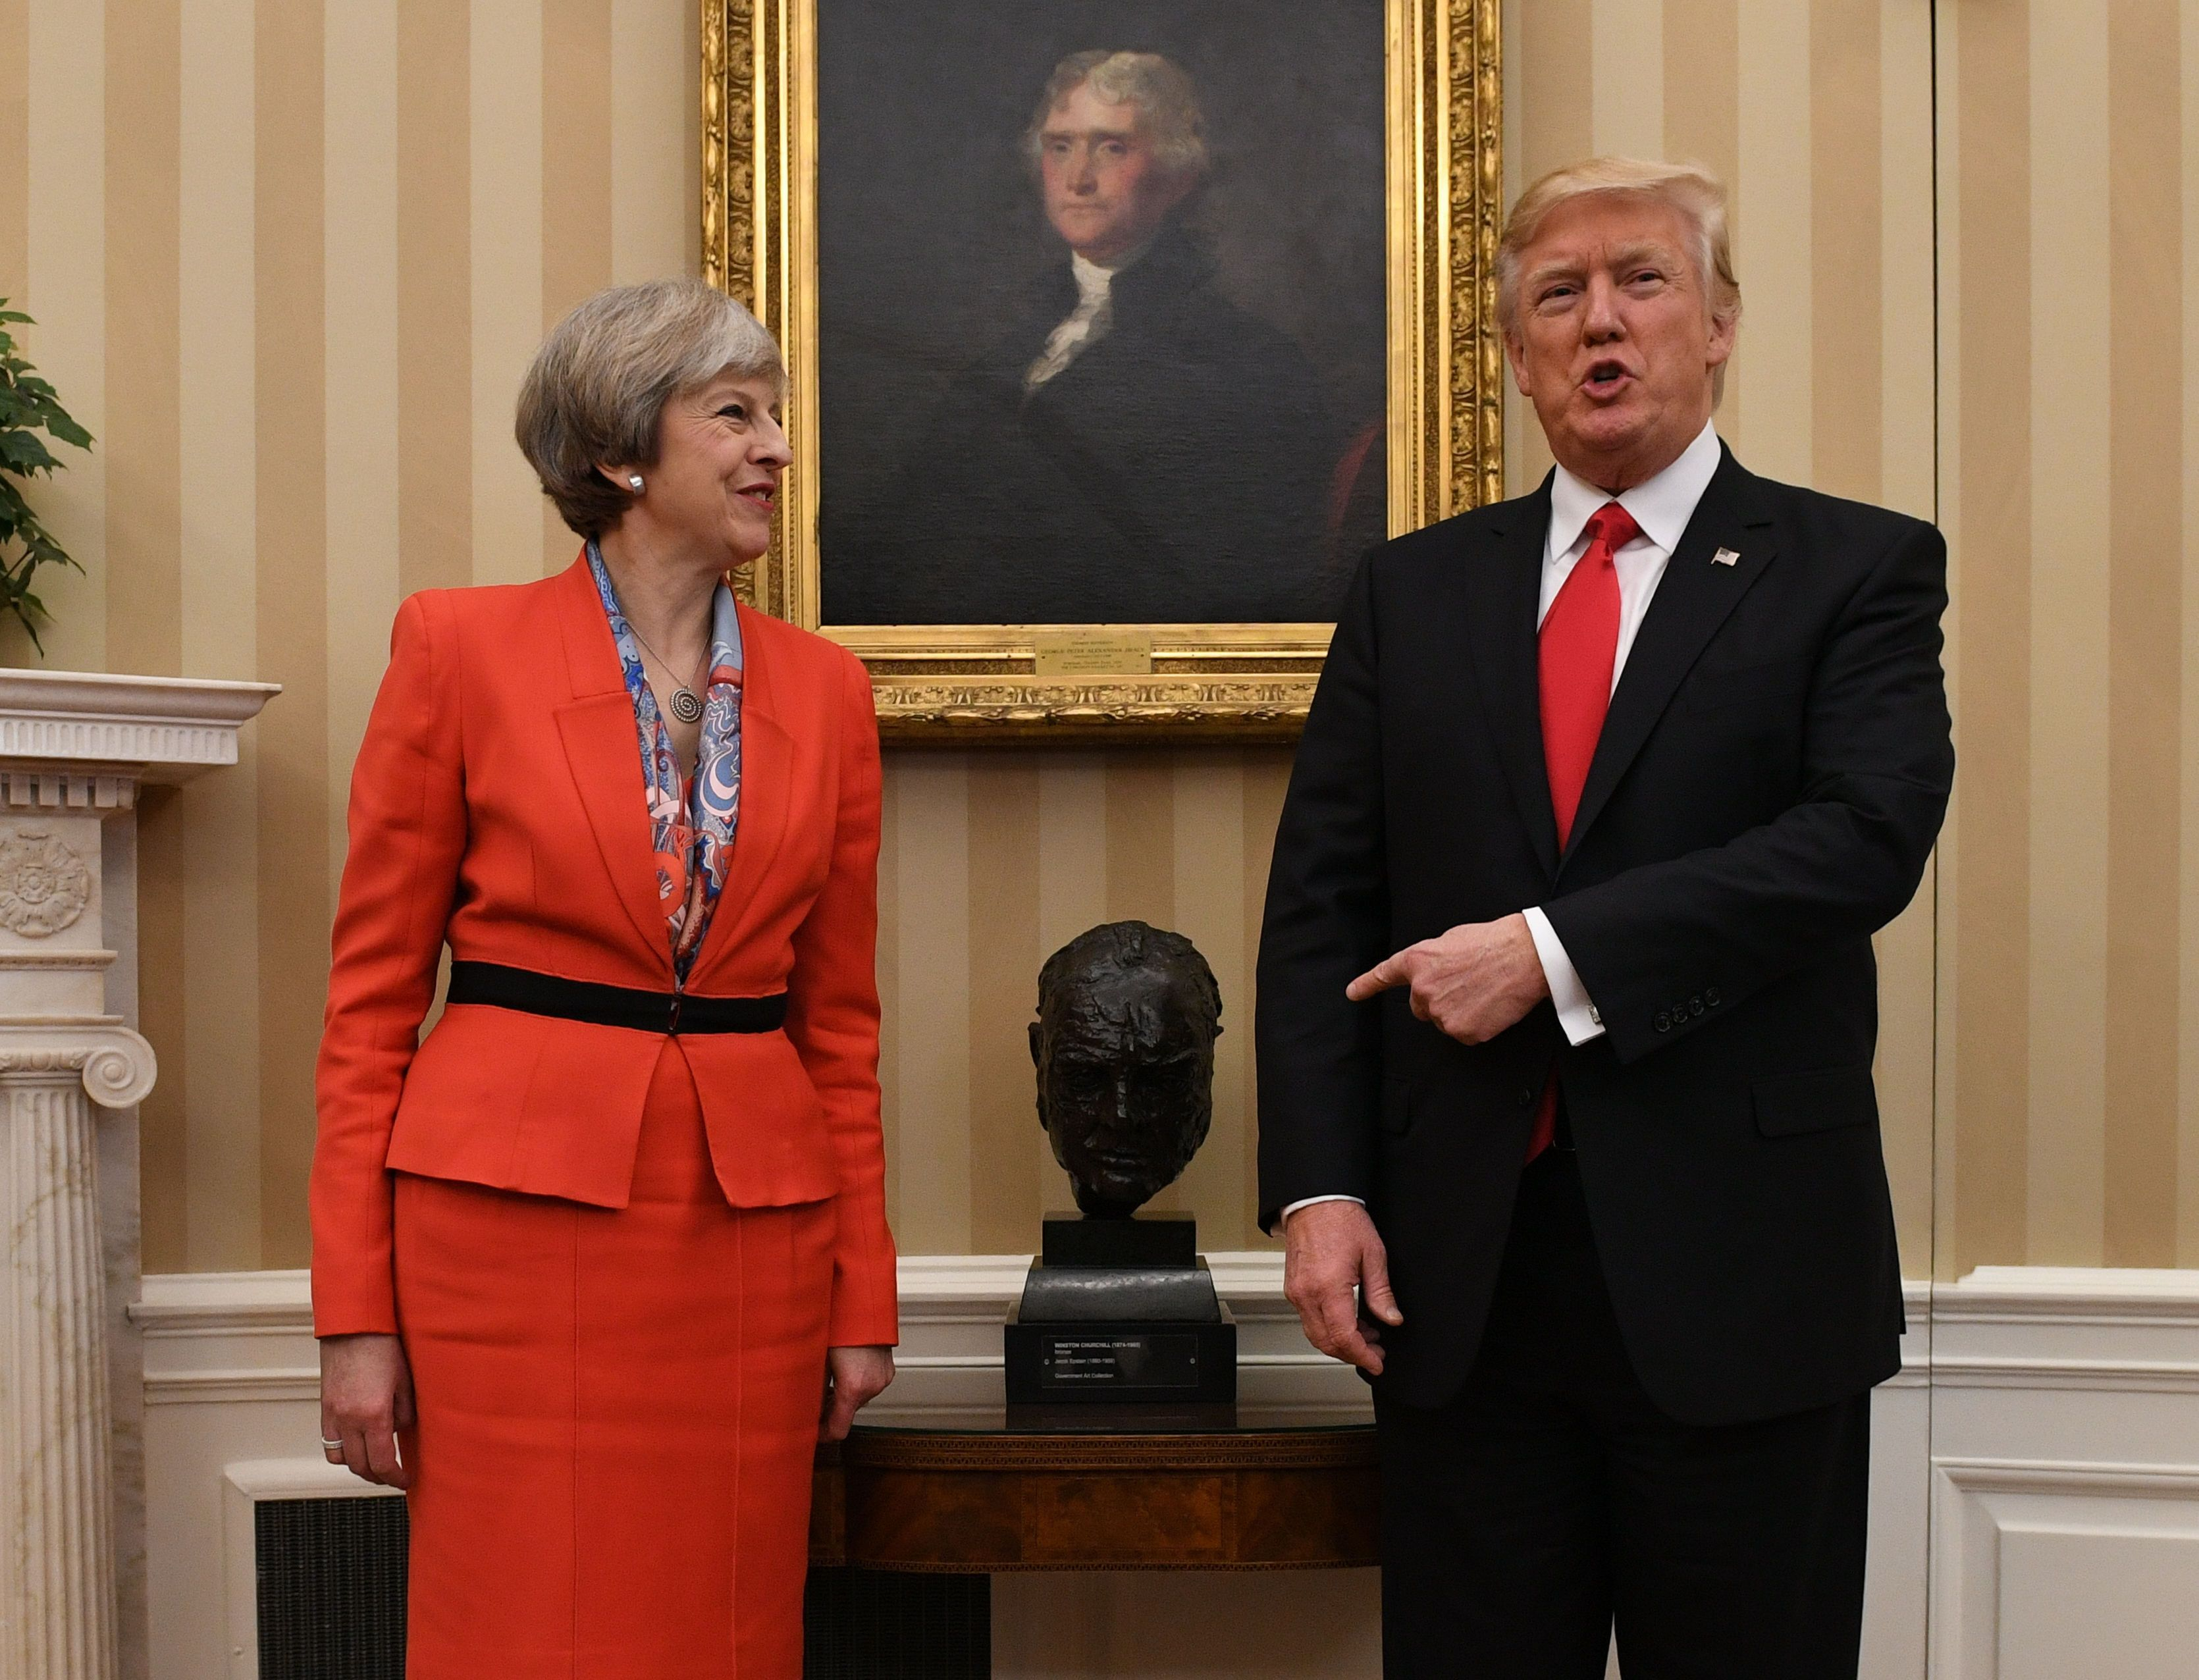 May Fails To Mention Britain First Retweets On Trump Call - Wishes President A Merry